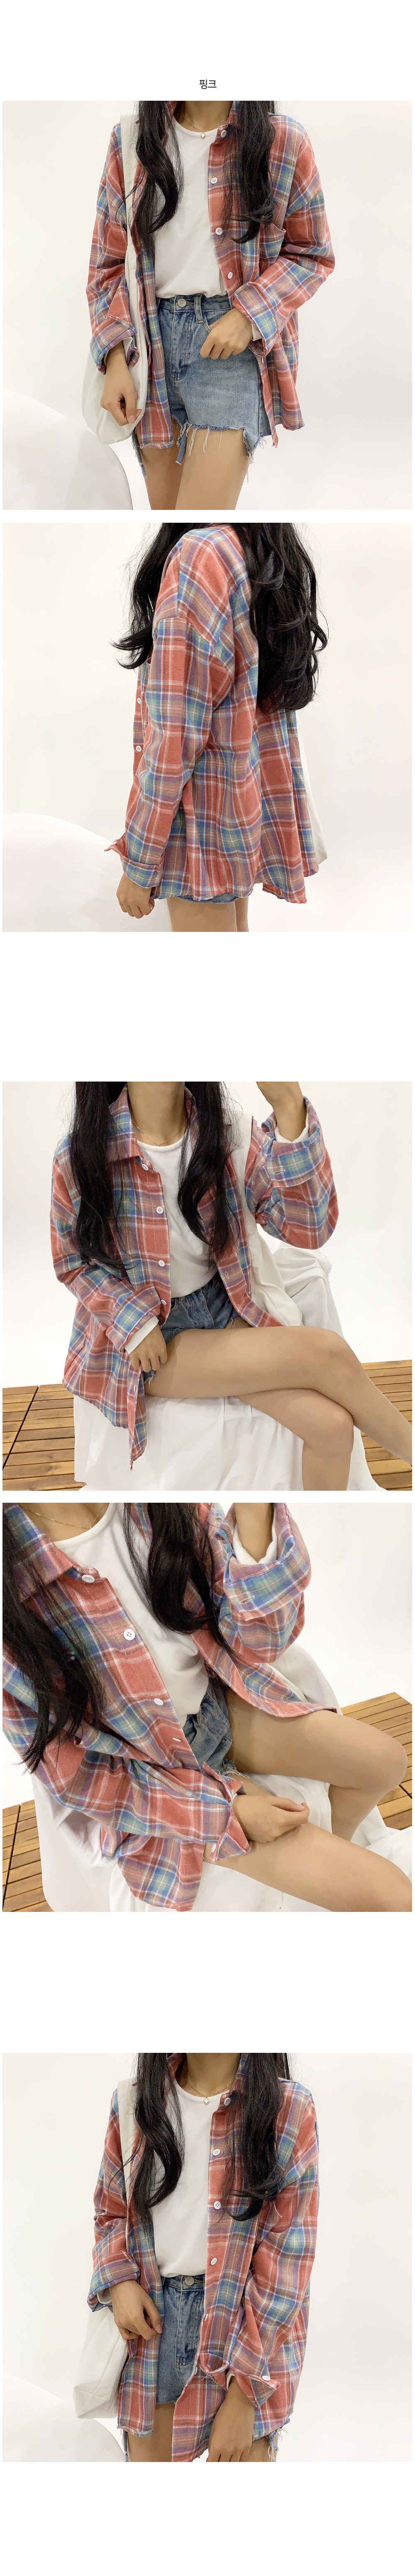 Cotton Candy Check Southern Shirt T#YW144